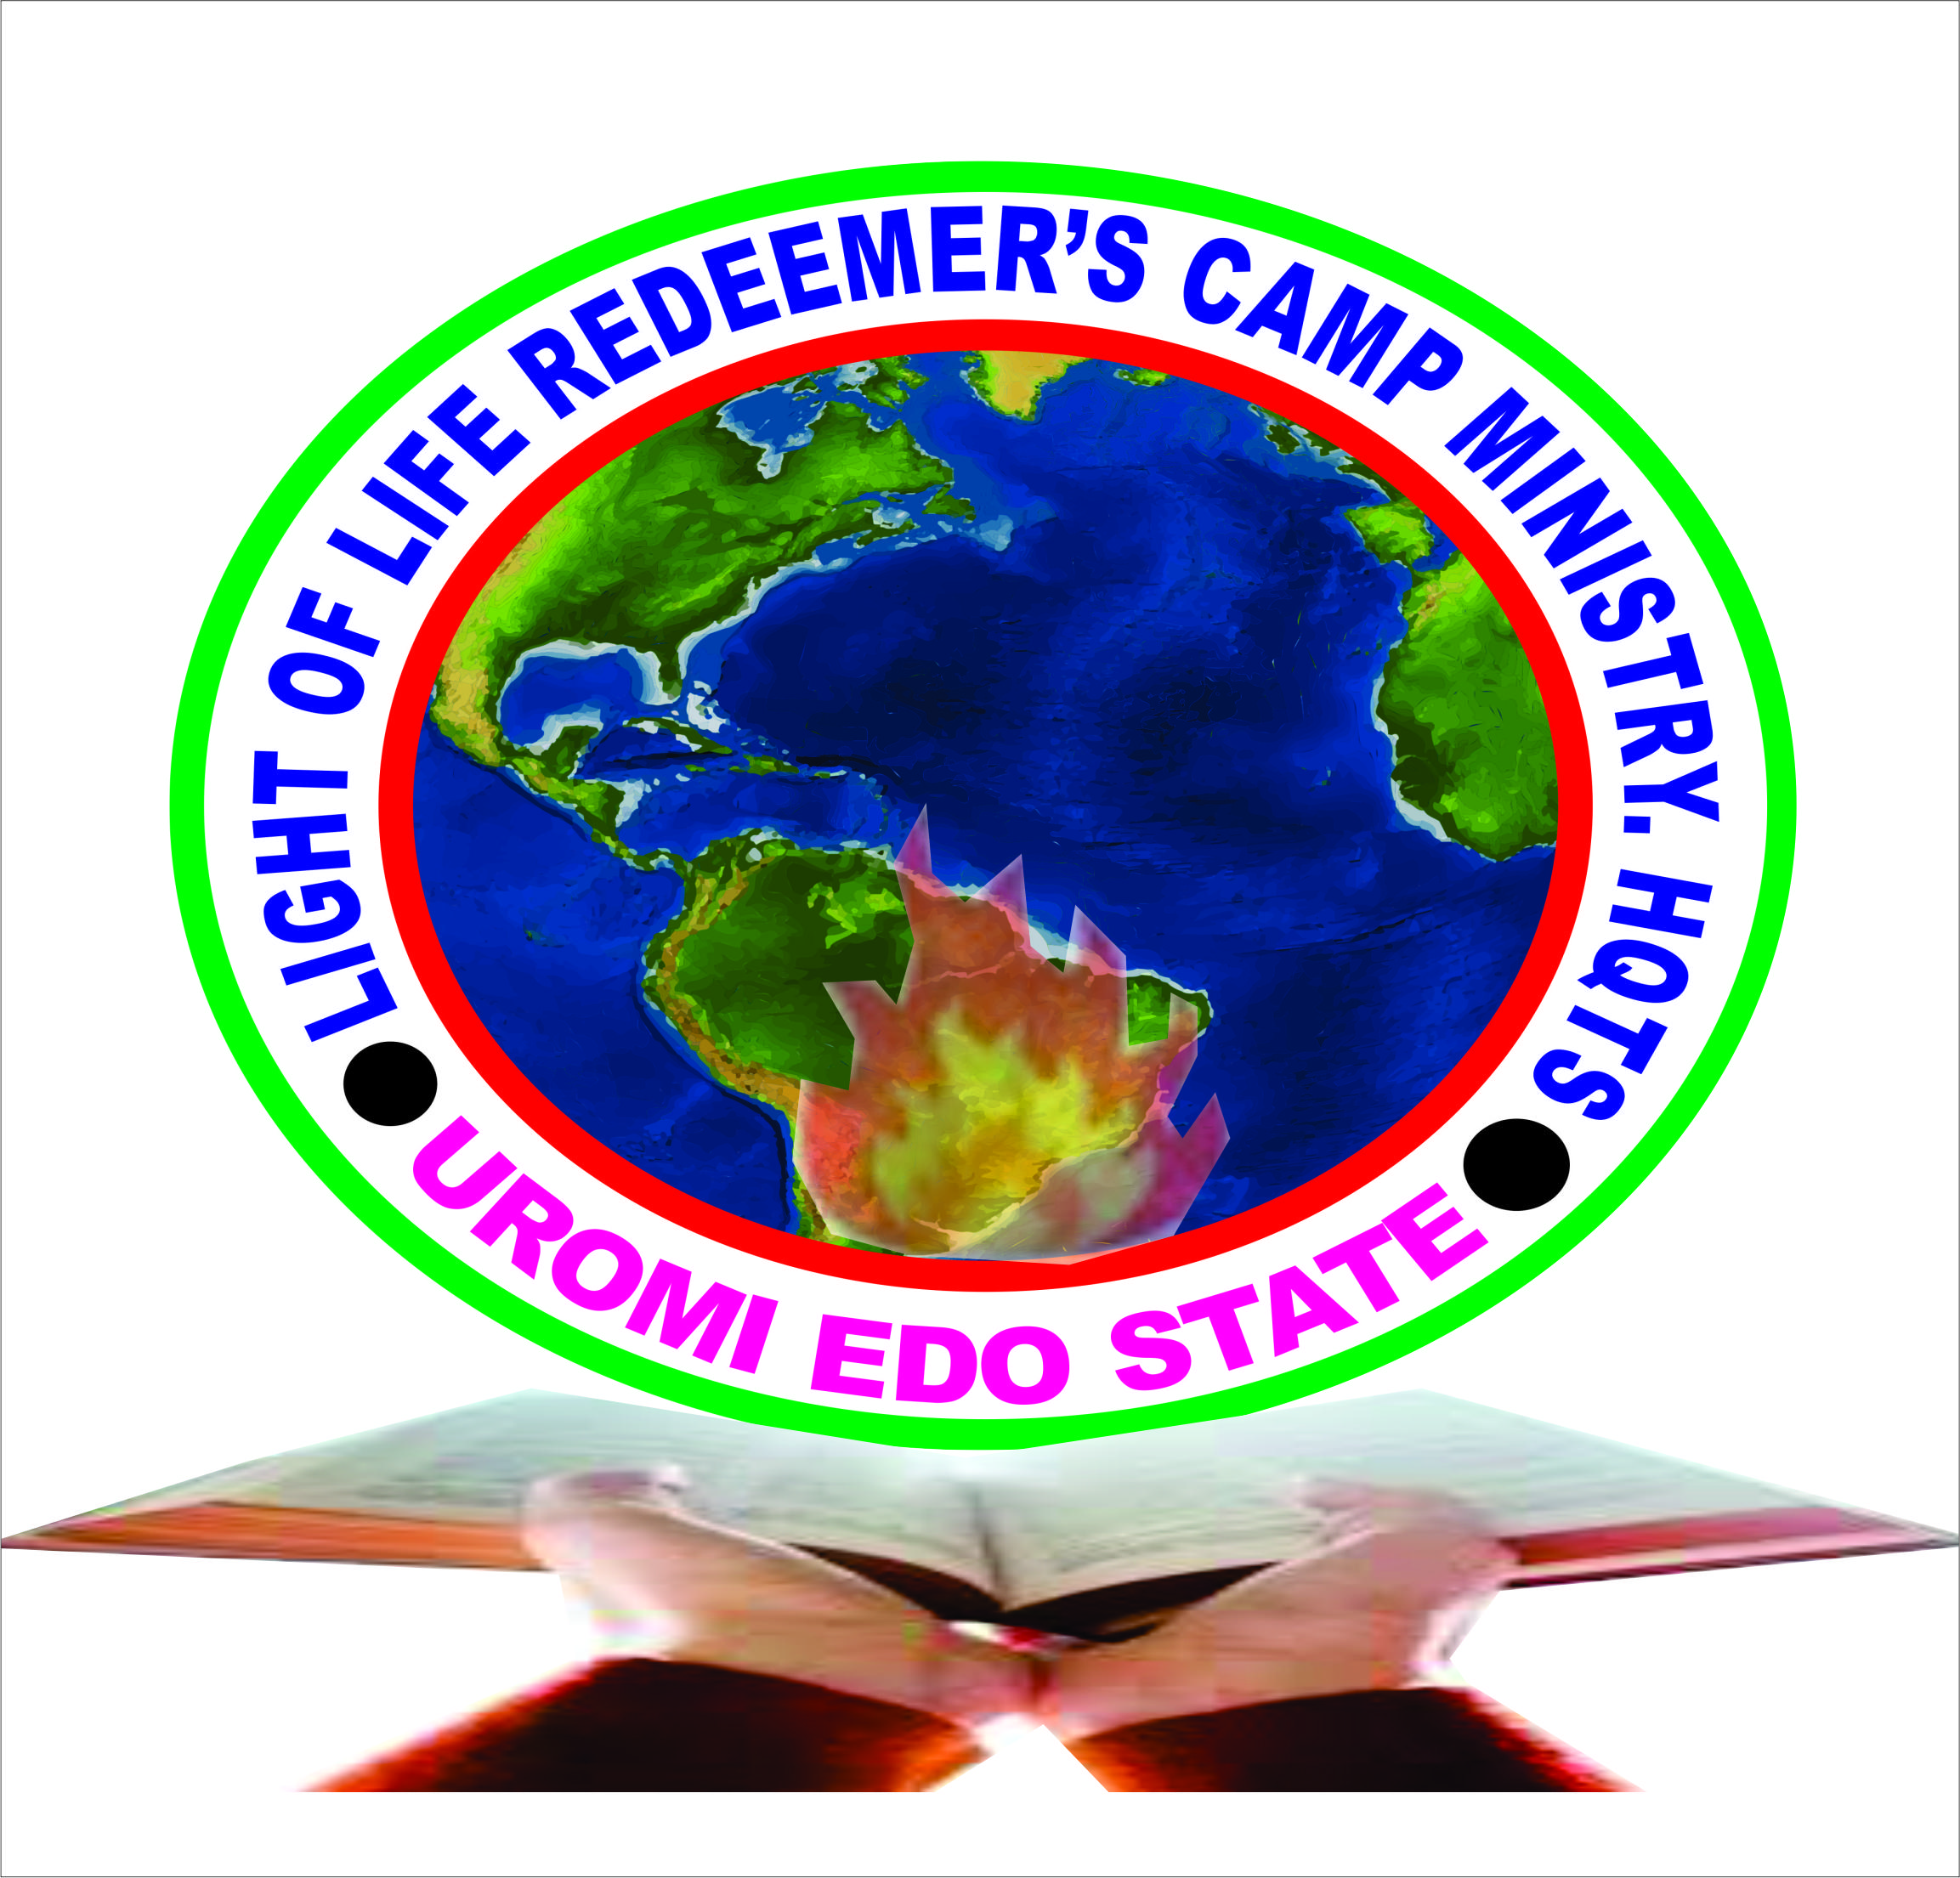 light of life redeemers camp ministry Logo